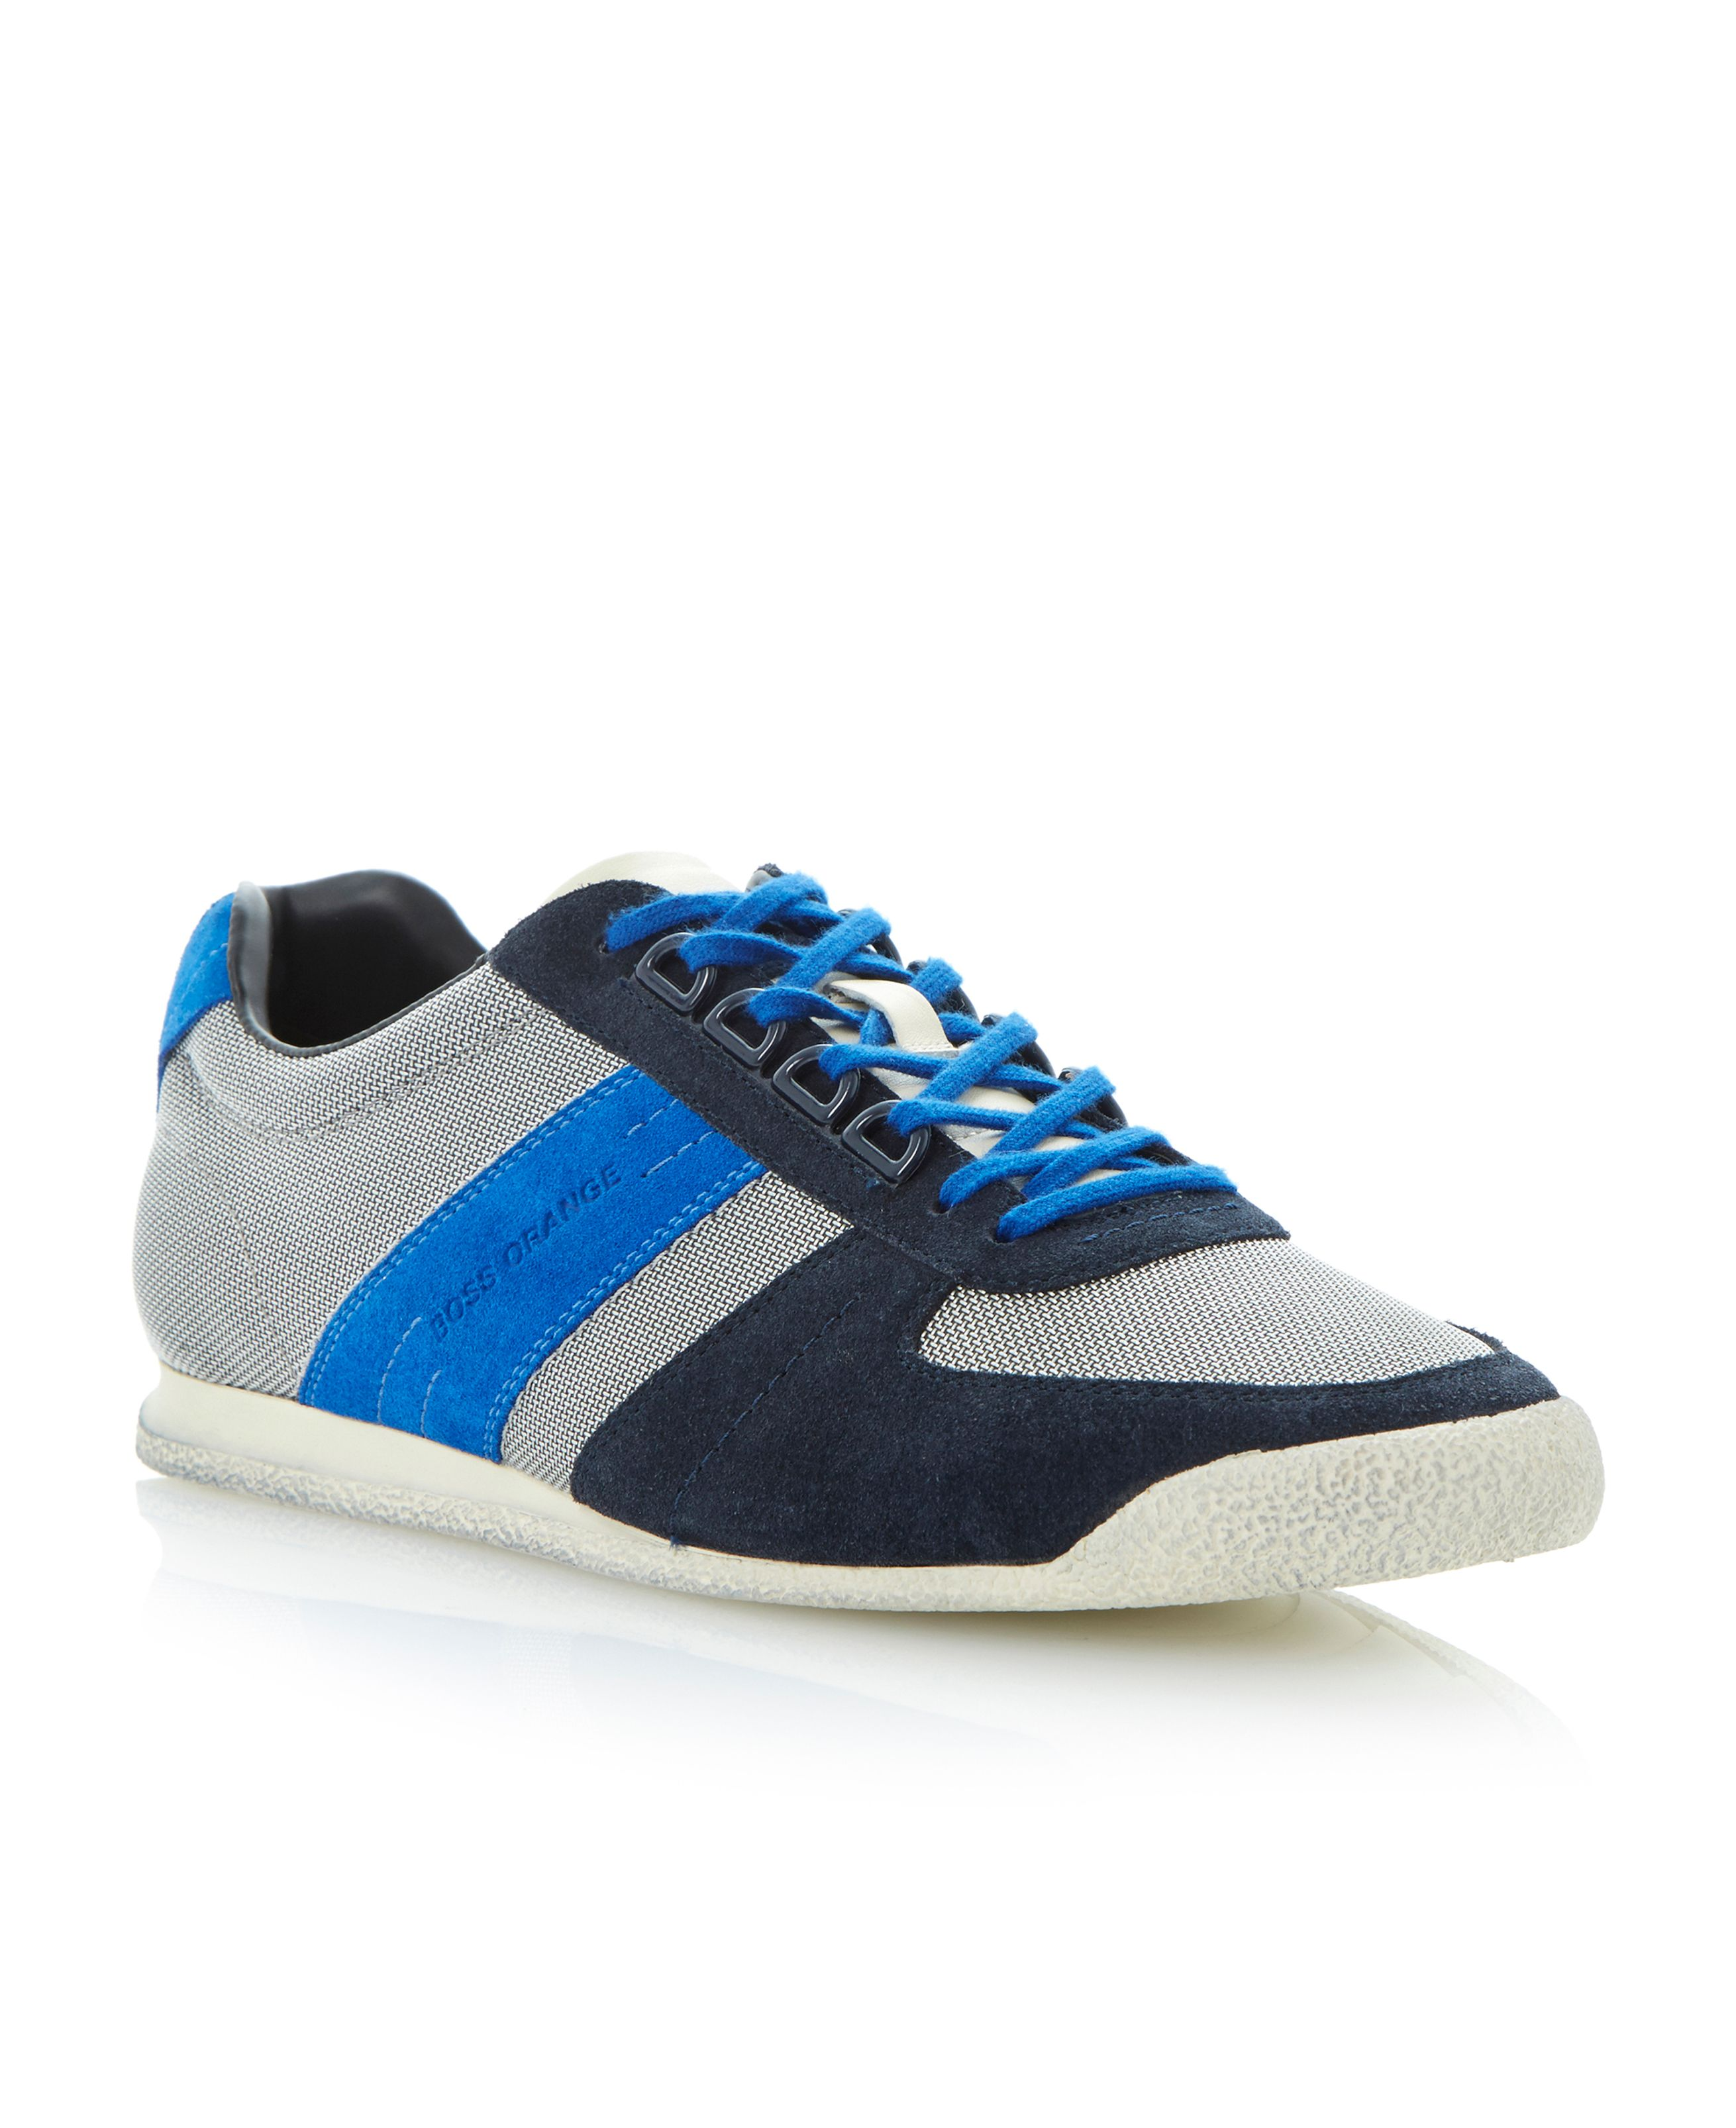 Calmeso lace up trainers